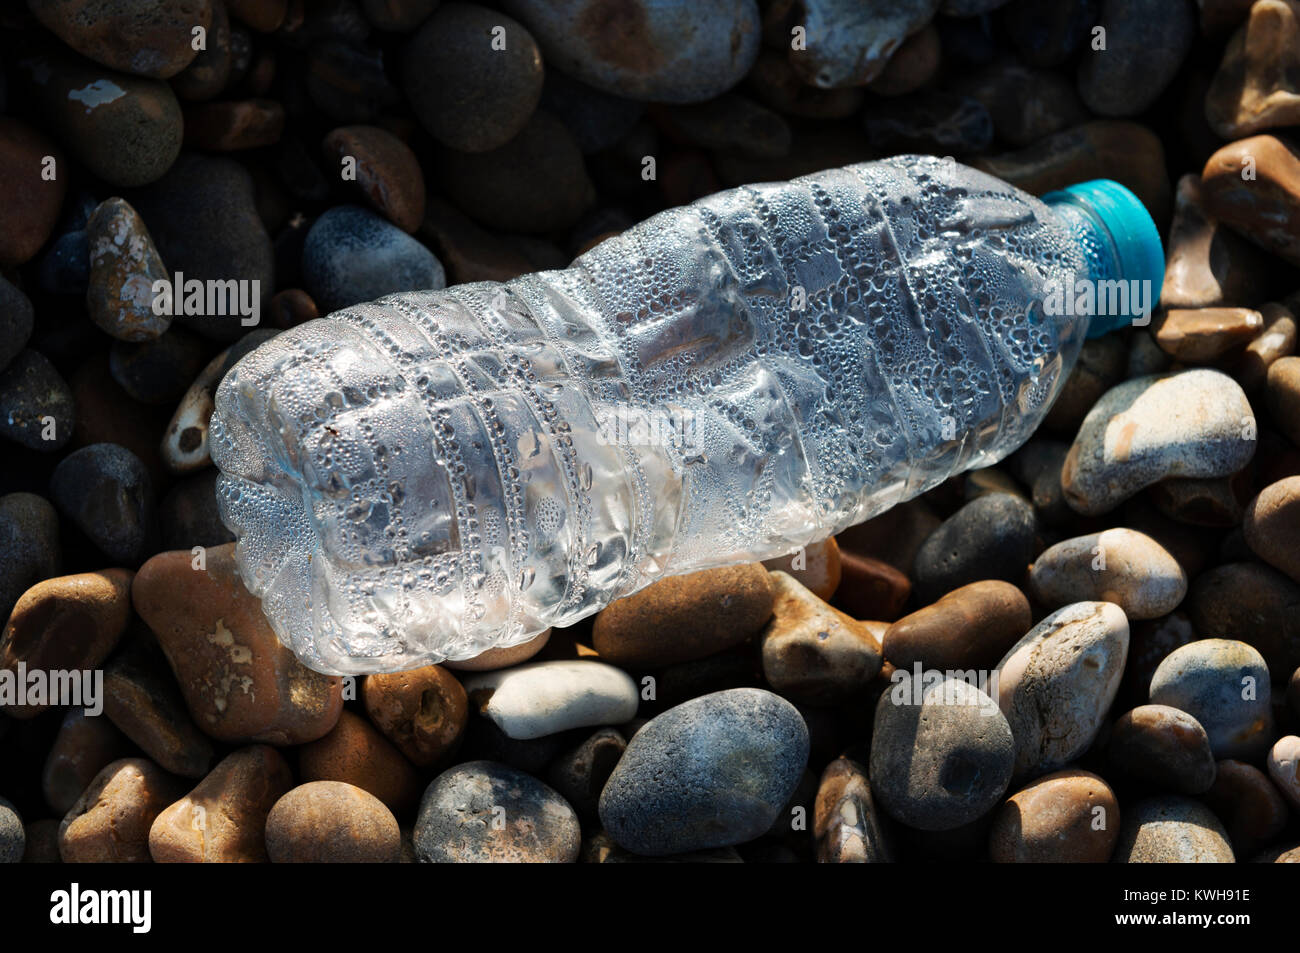 Plastic bottle washed up on a beach - Stock Image